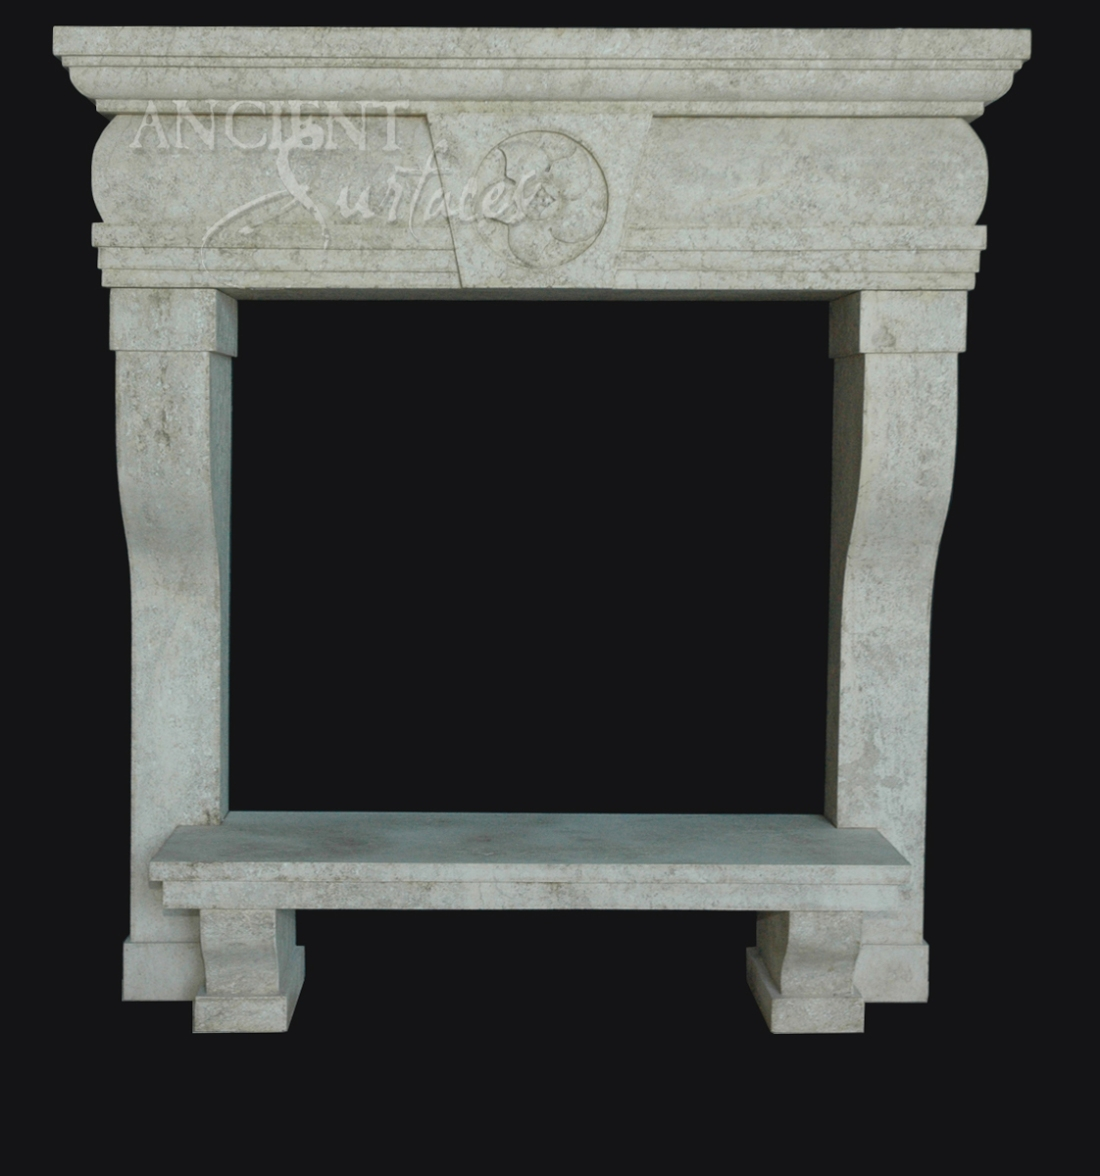 The Mariana Fireplace